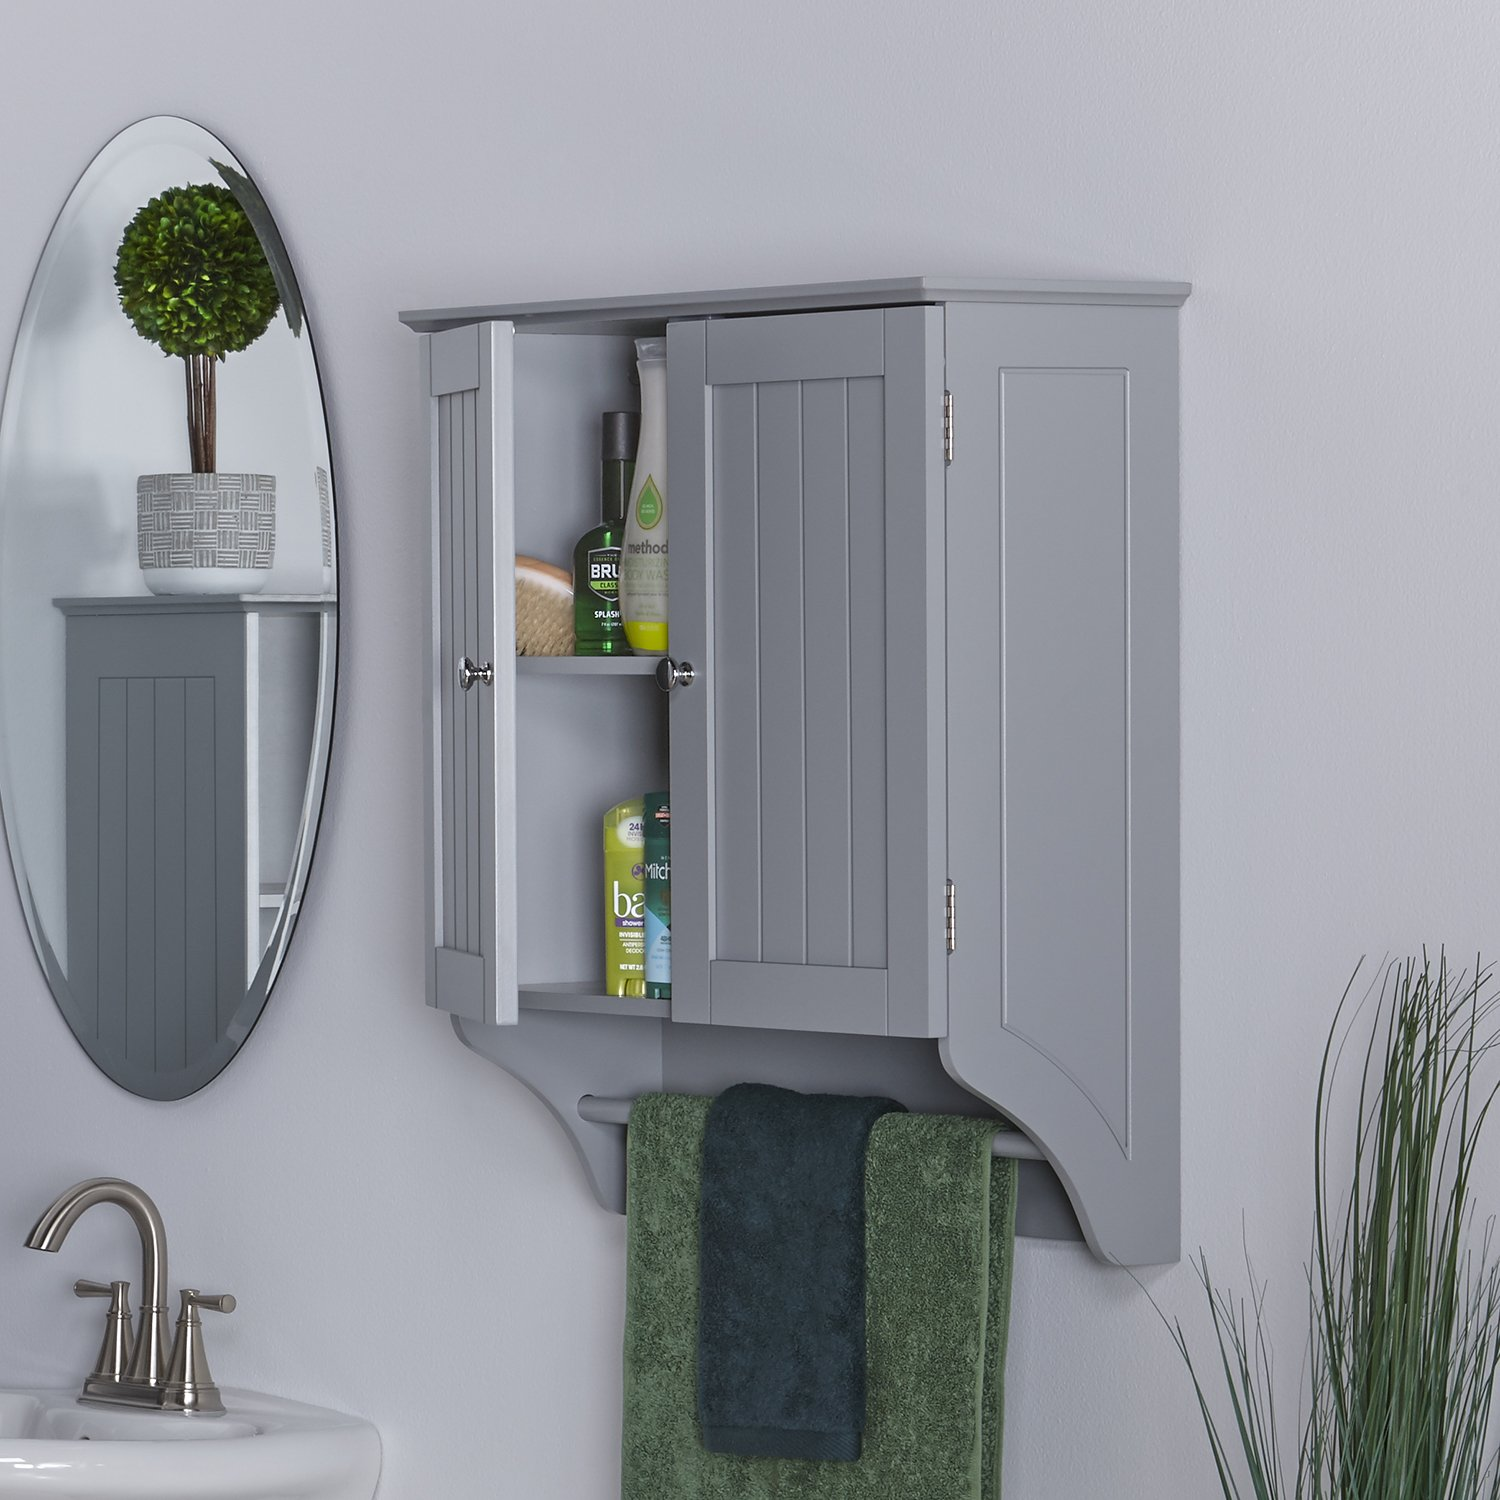 2-Door Over the Toilet Wall Cabinet, Hide Toiletries and Other Bathroom Items Behind Doors for a Clean Presentation, Мirrored Кnobs, Wood, Multiple Colors + Expert Guide